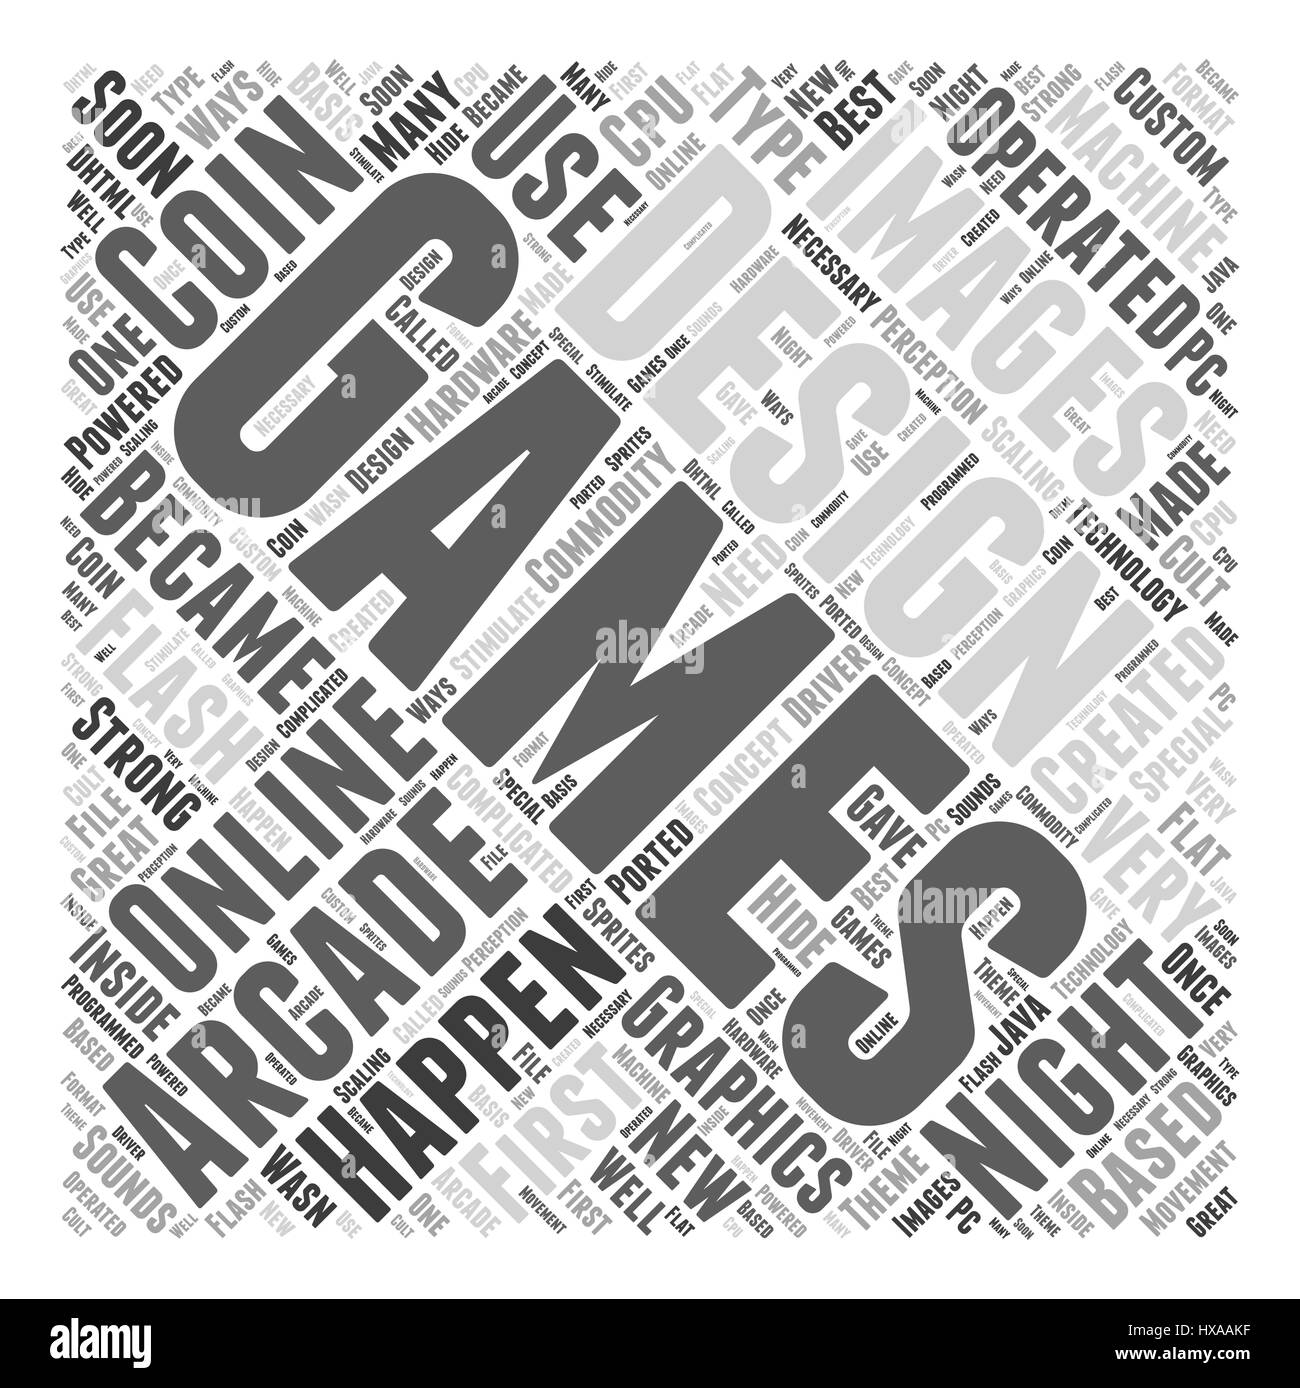 Designs for online gaming Word Cloud Concept - Stock Image